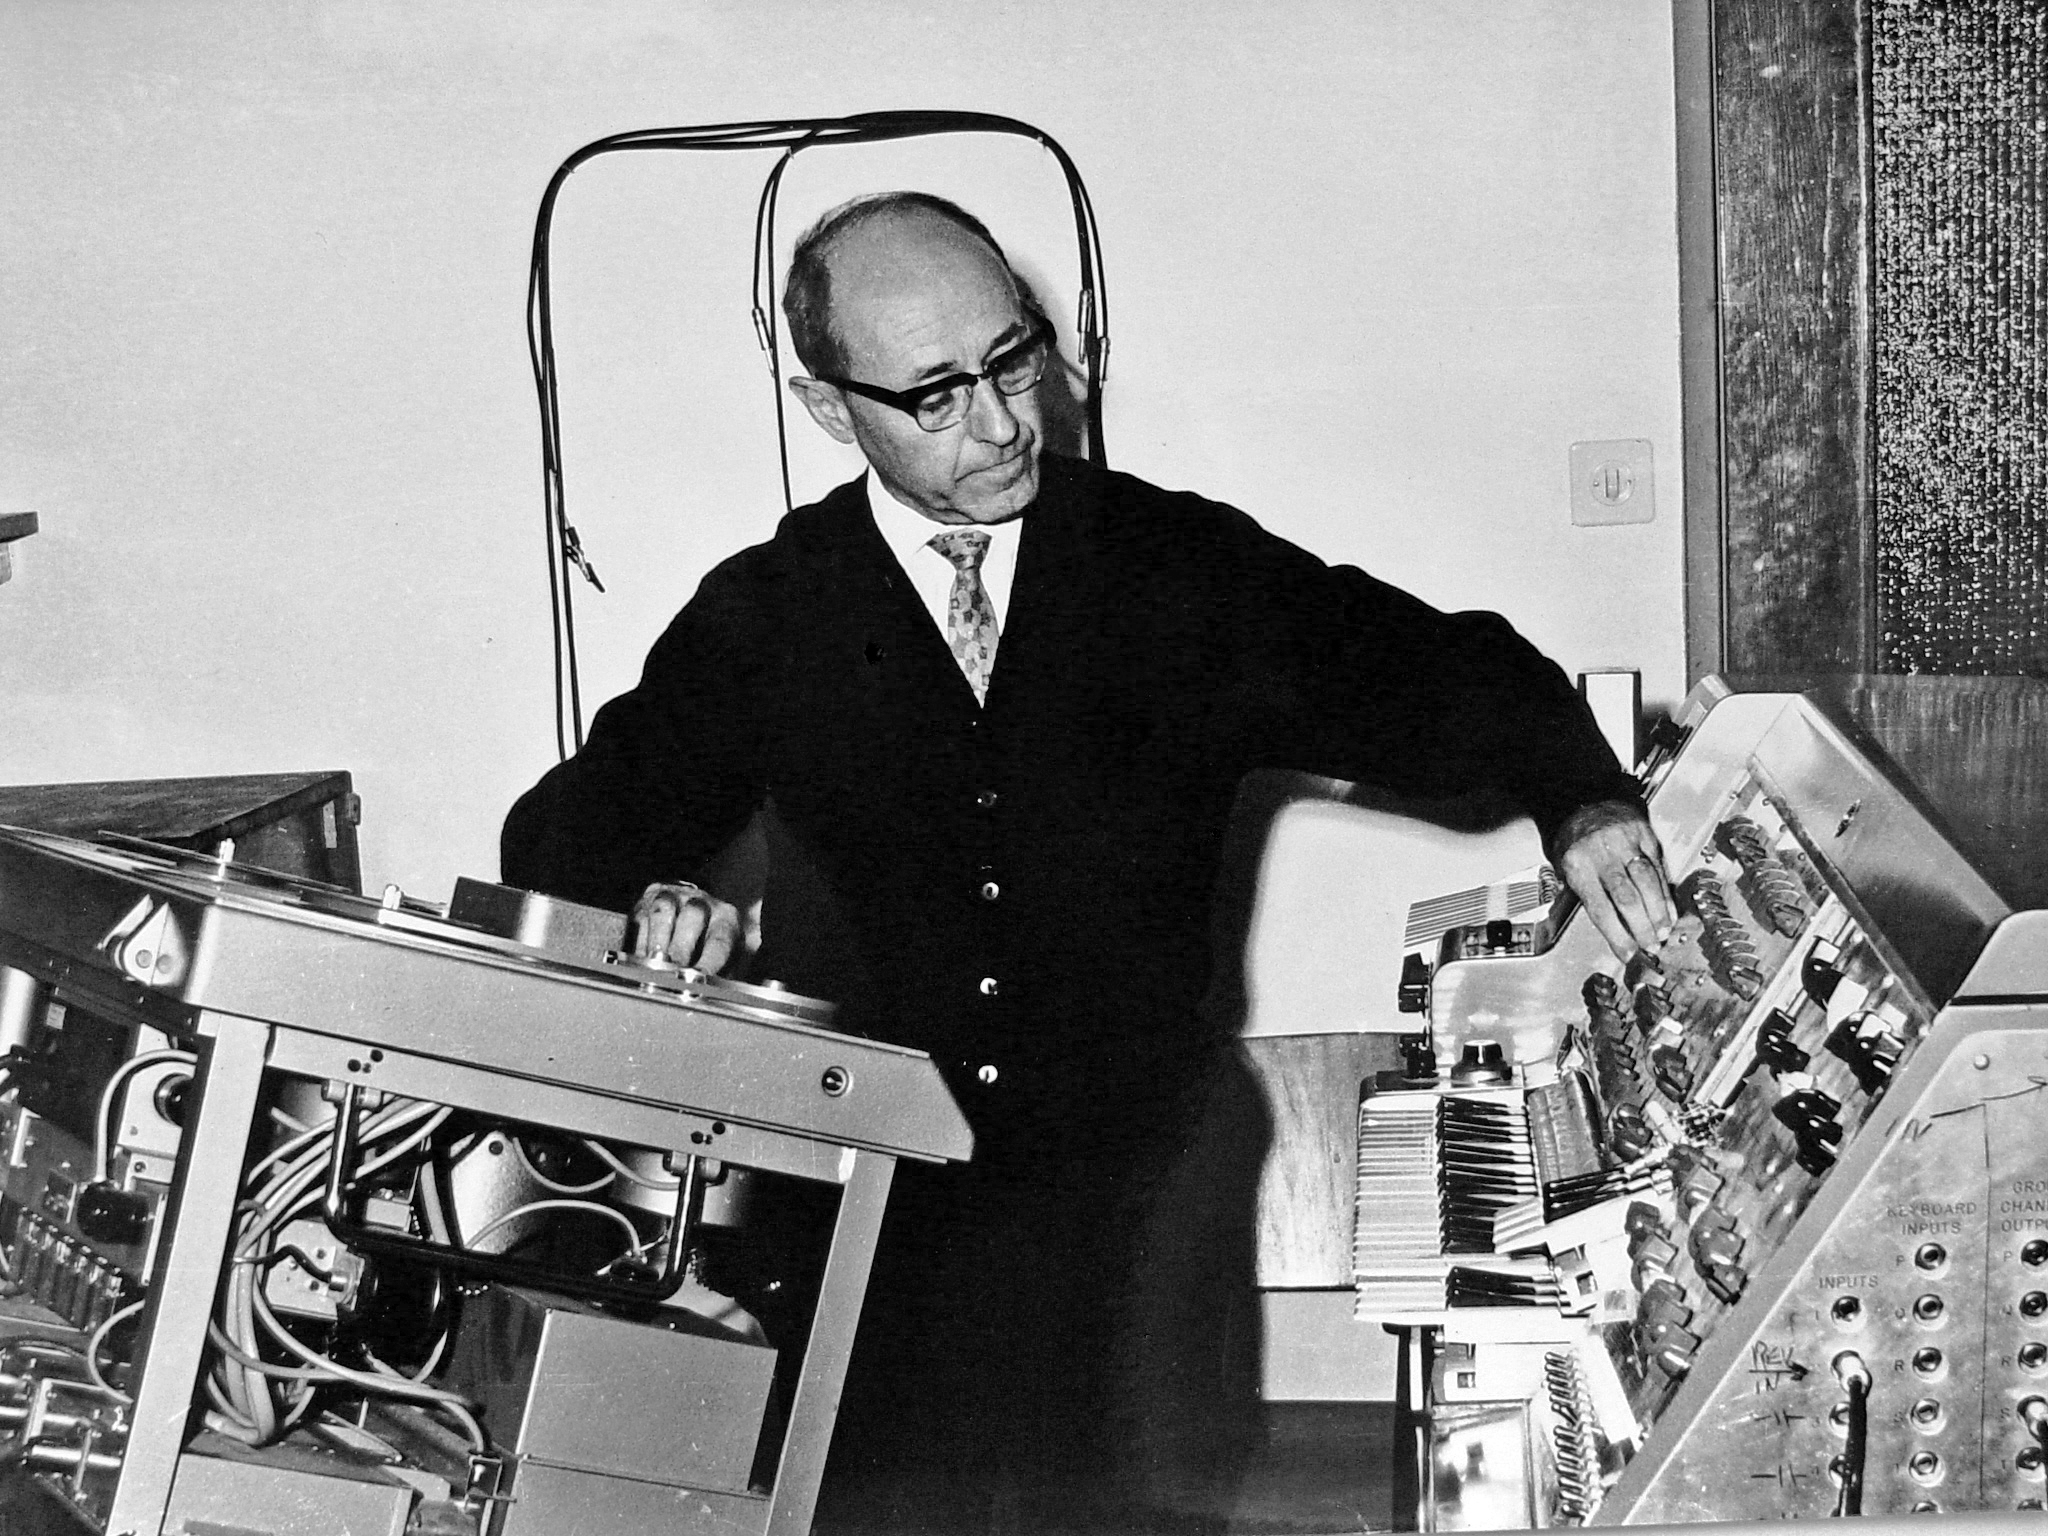 Josef Tal at the Electronic Music Studio